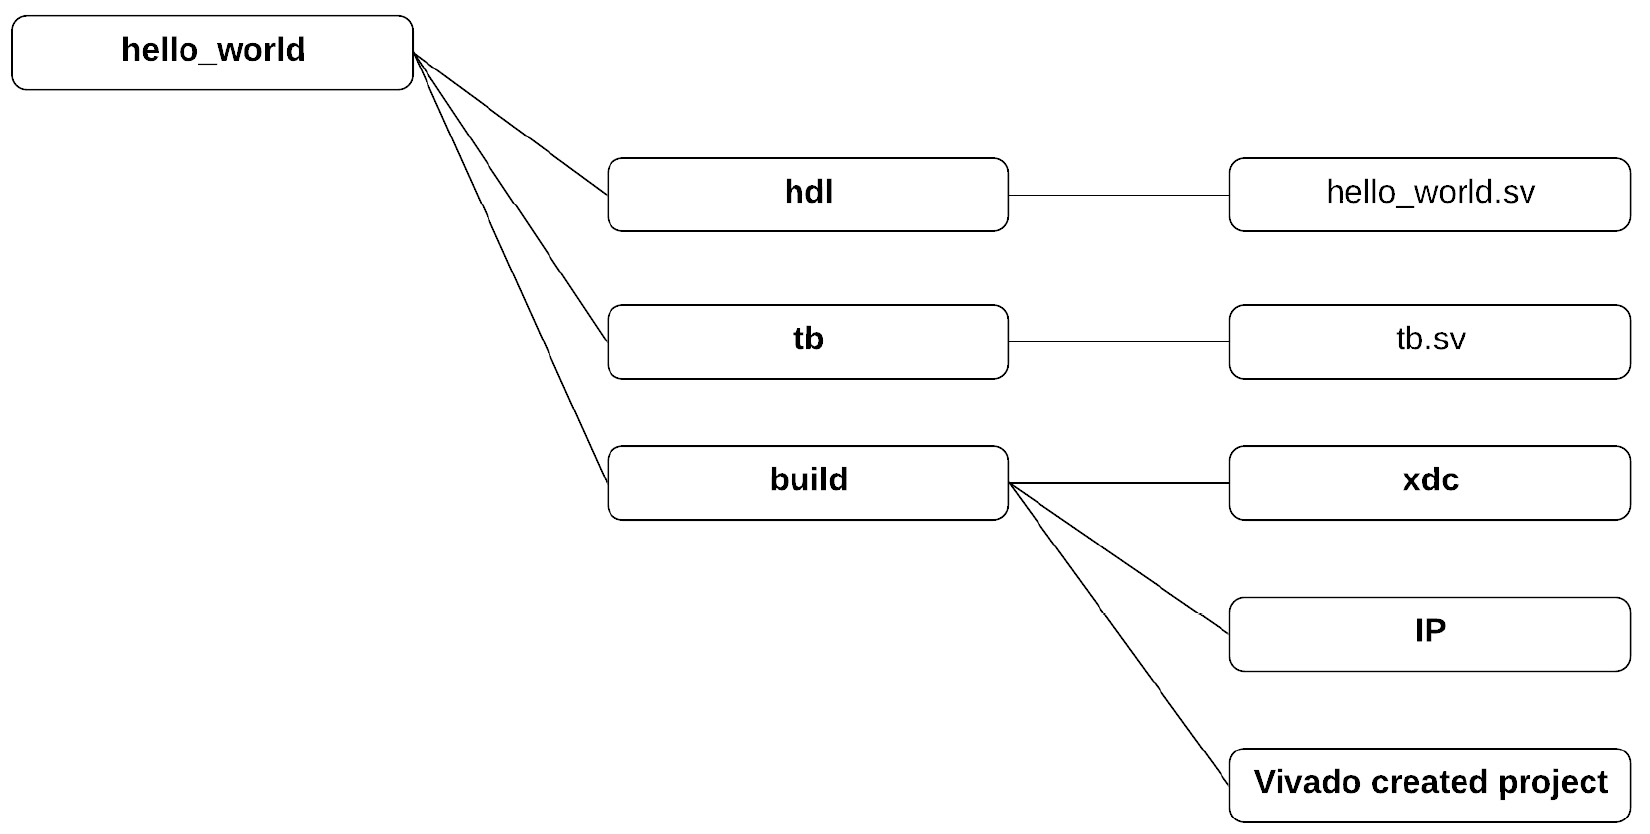 Figure 1.13 – Directory structure